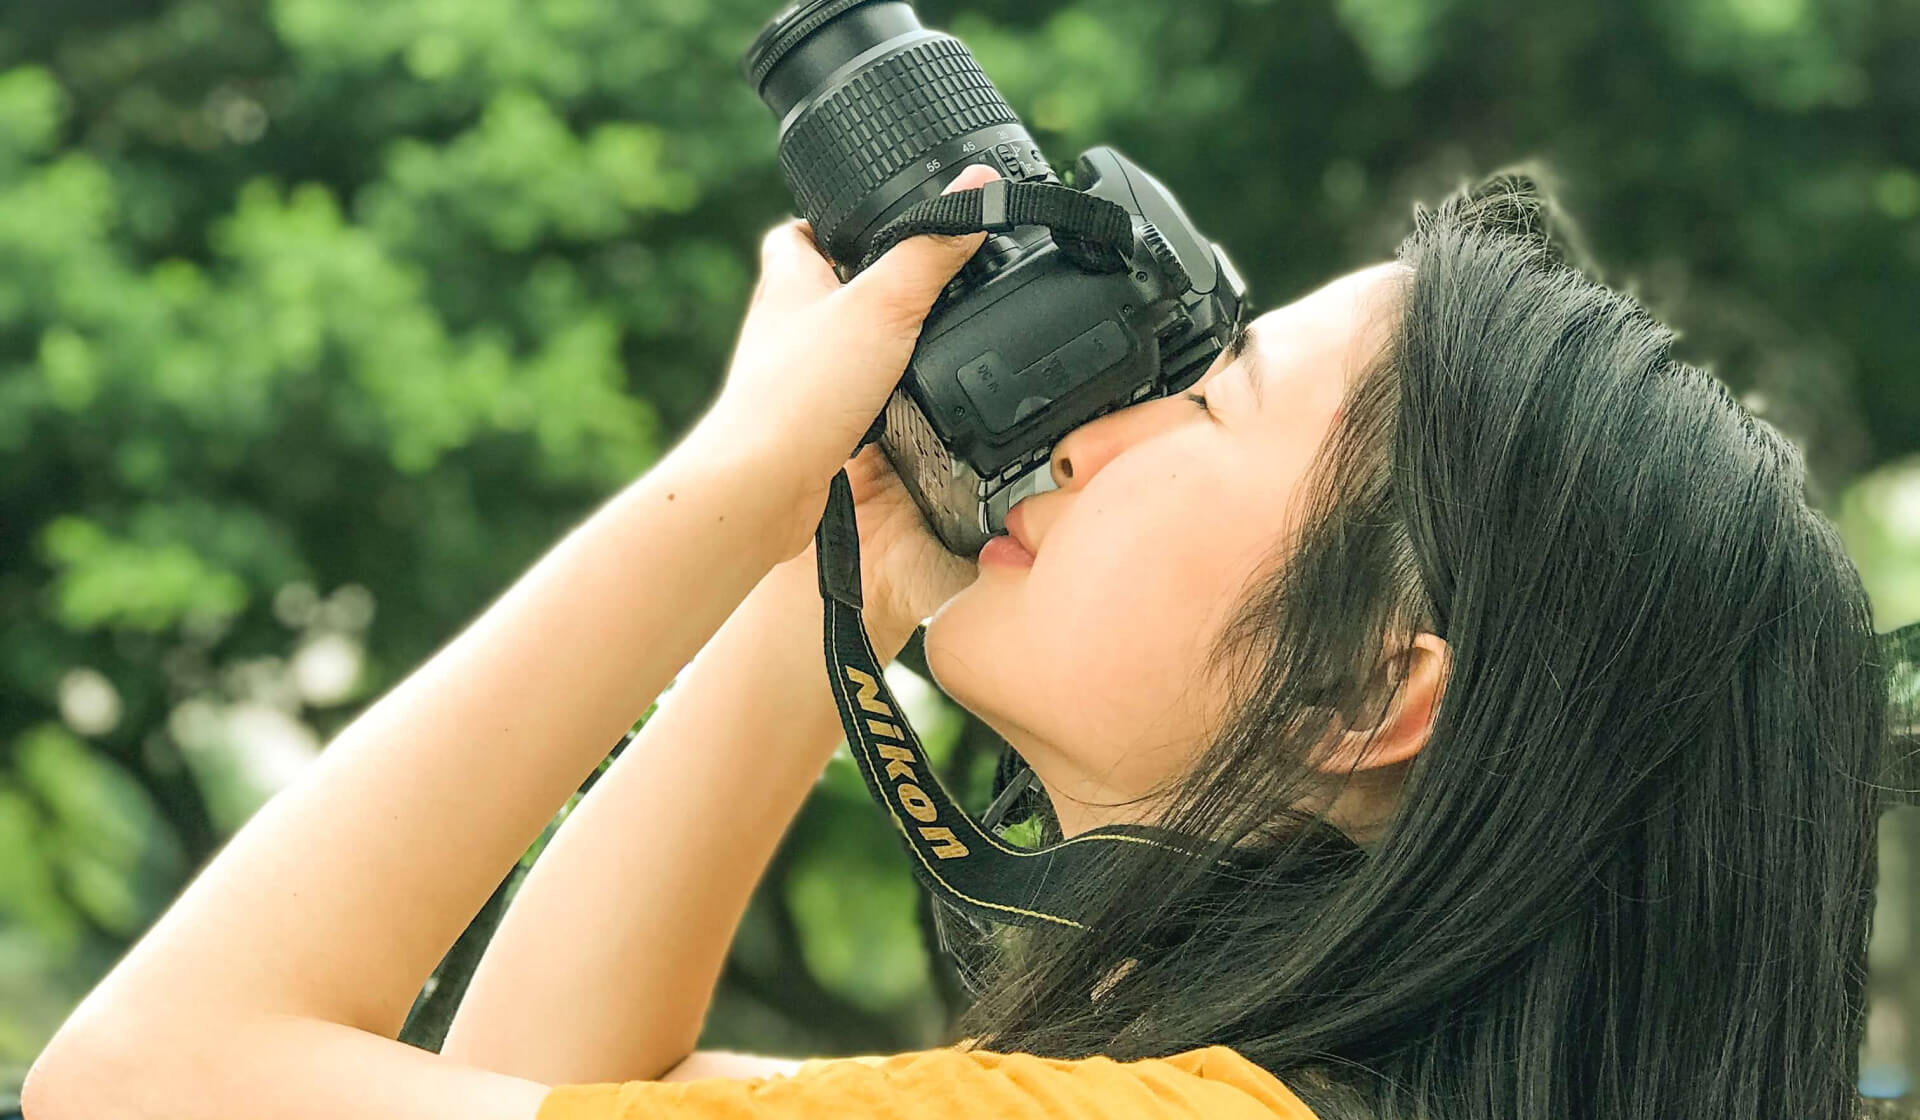 Woman looking into a camera and taking a photograph of something above